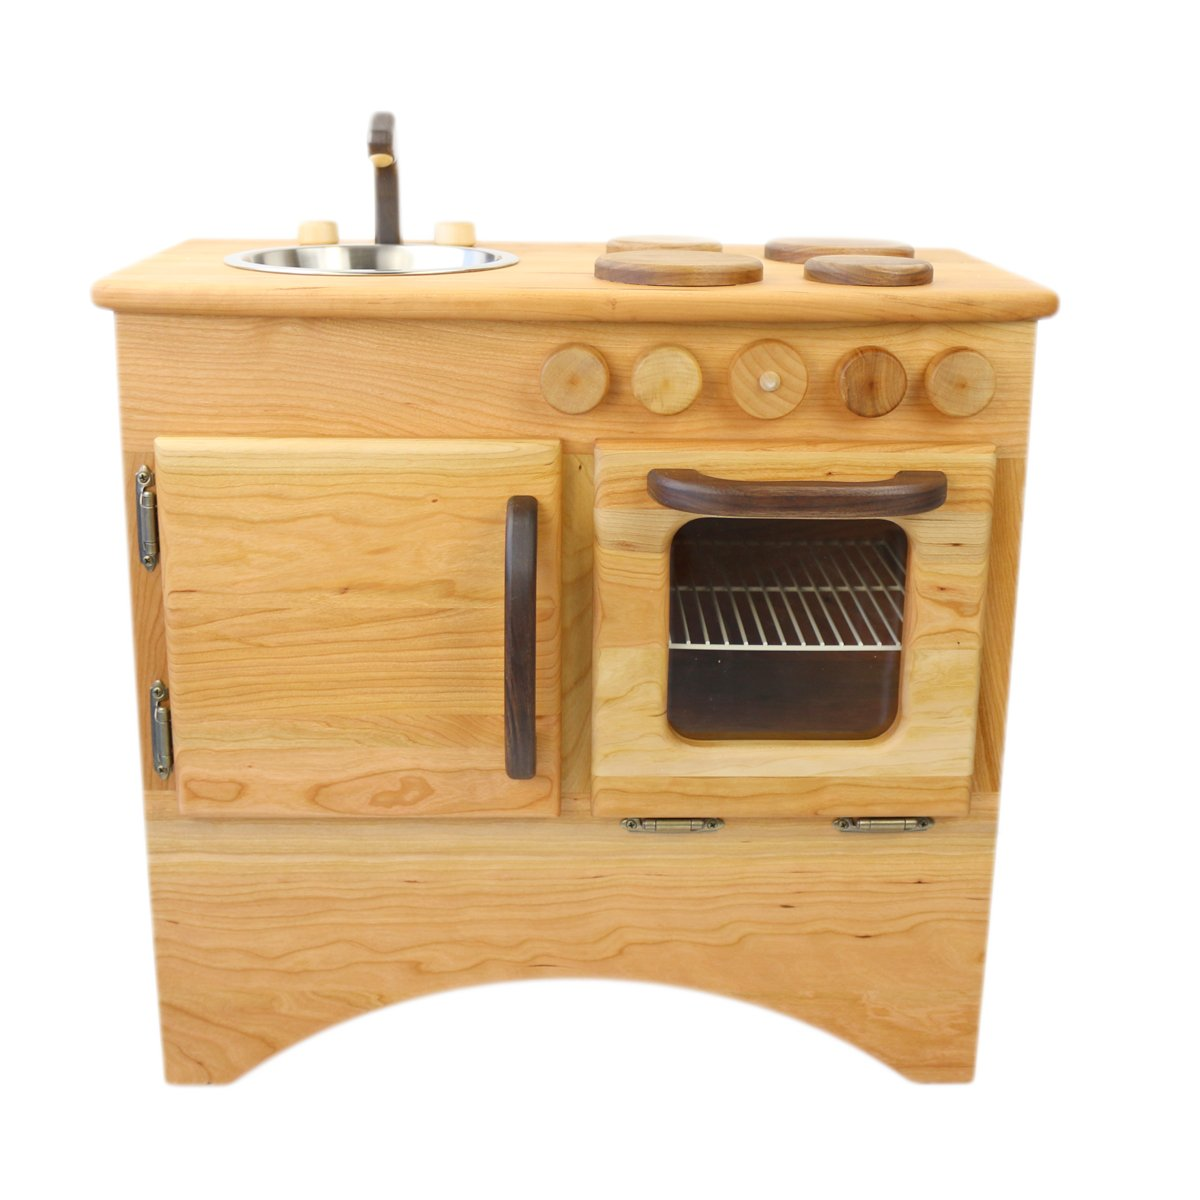 Camden Rose Beautiful Hearth (Child's Cherry Wood Play Kitchen, Without Hutch) by Camden Rose